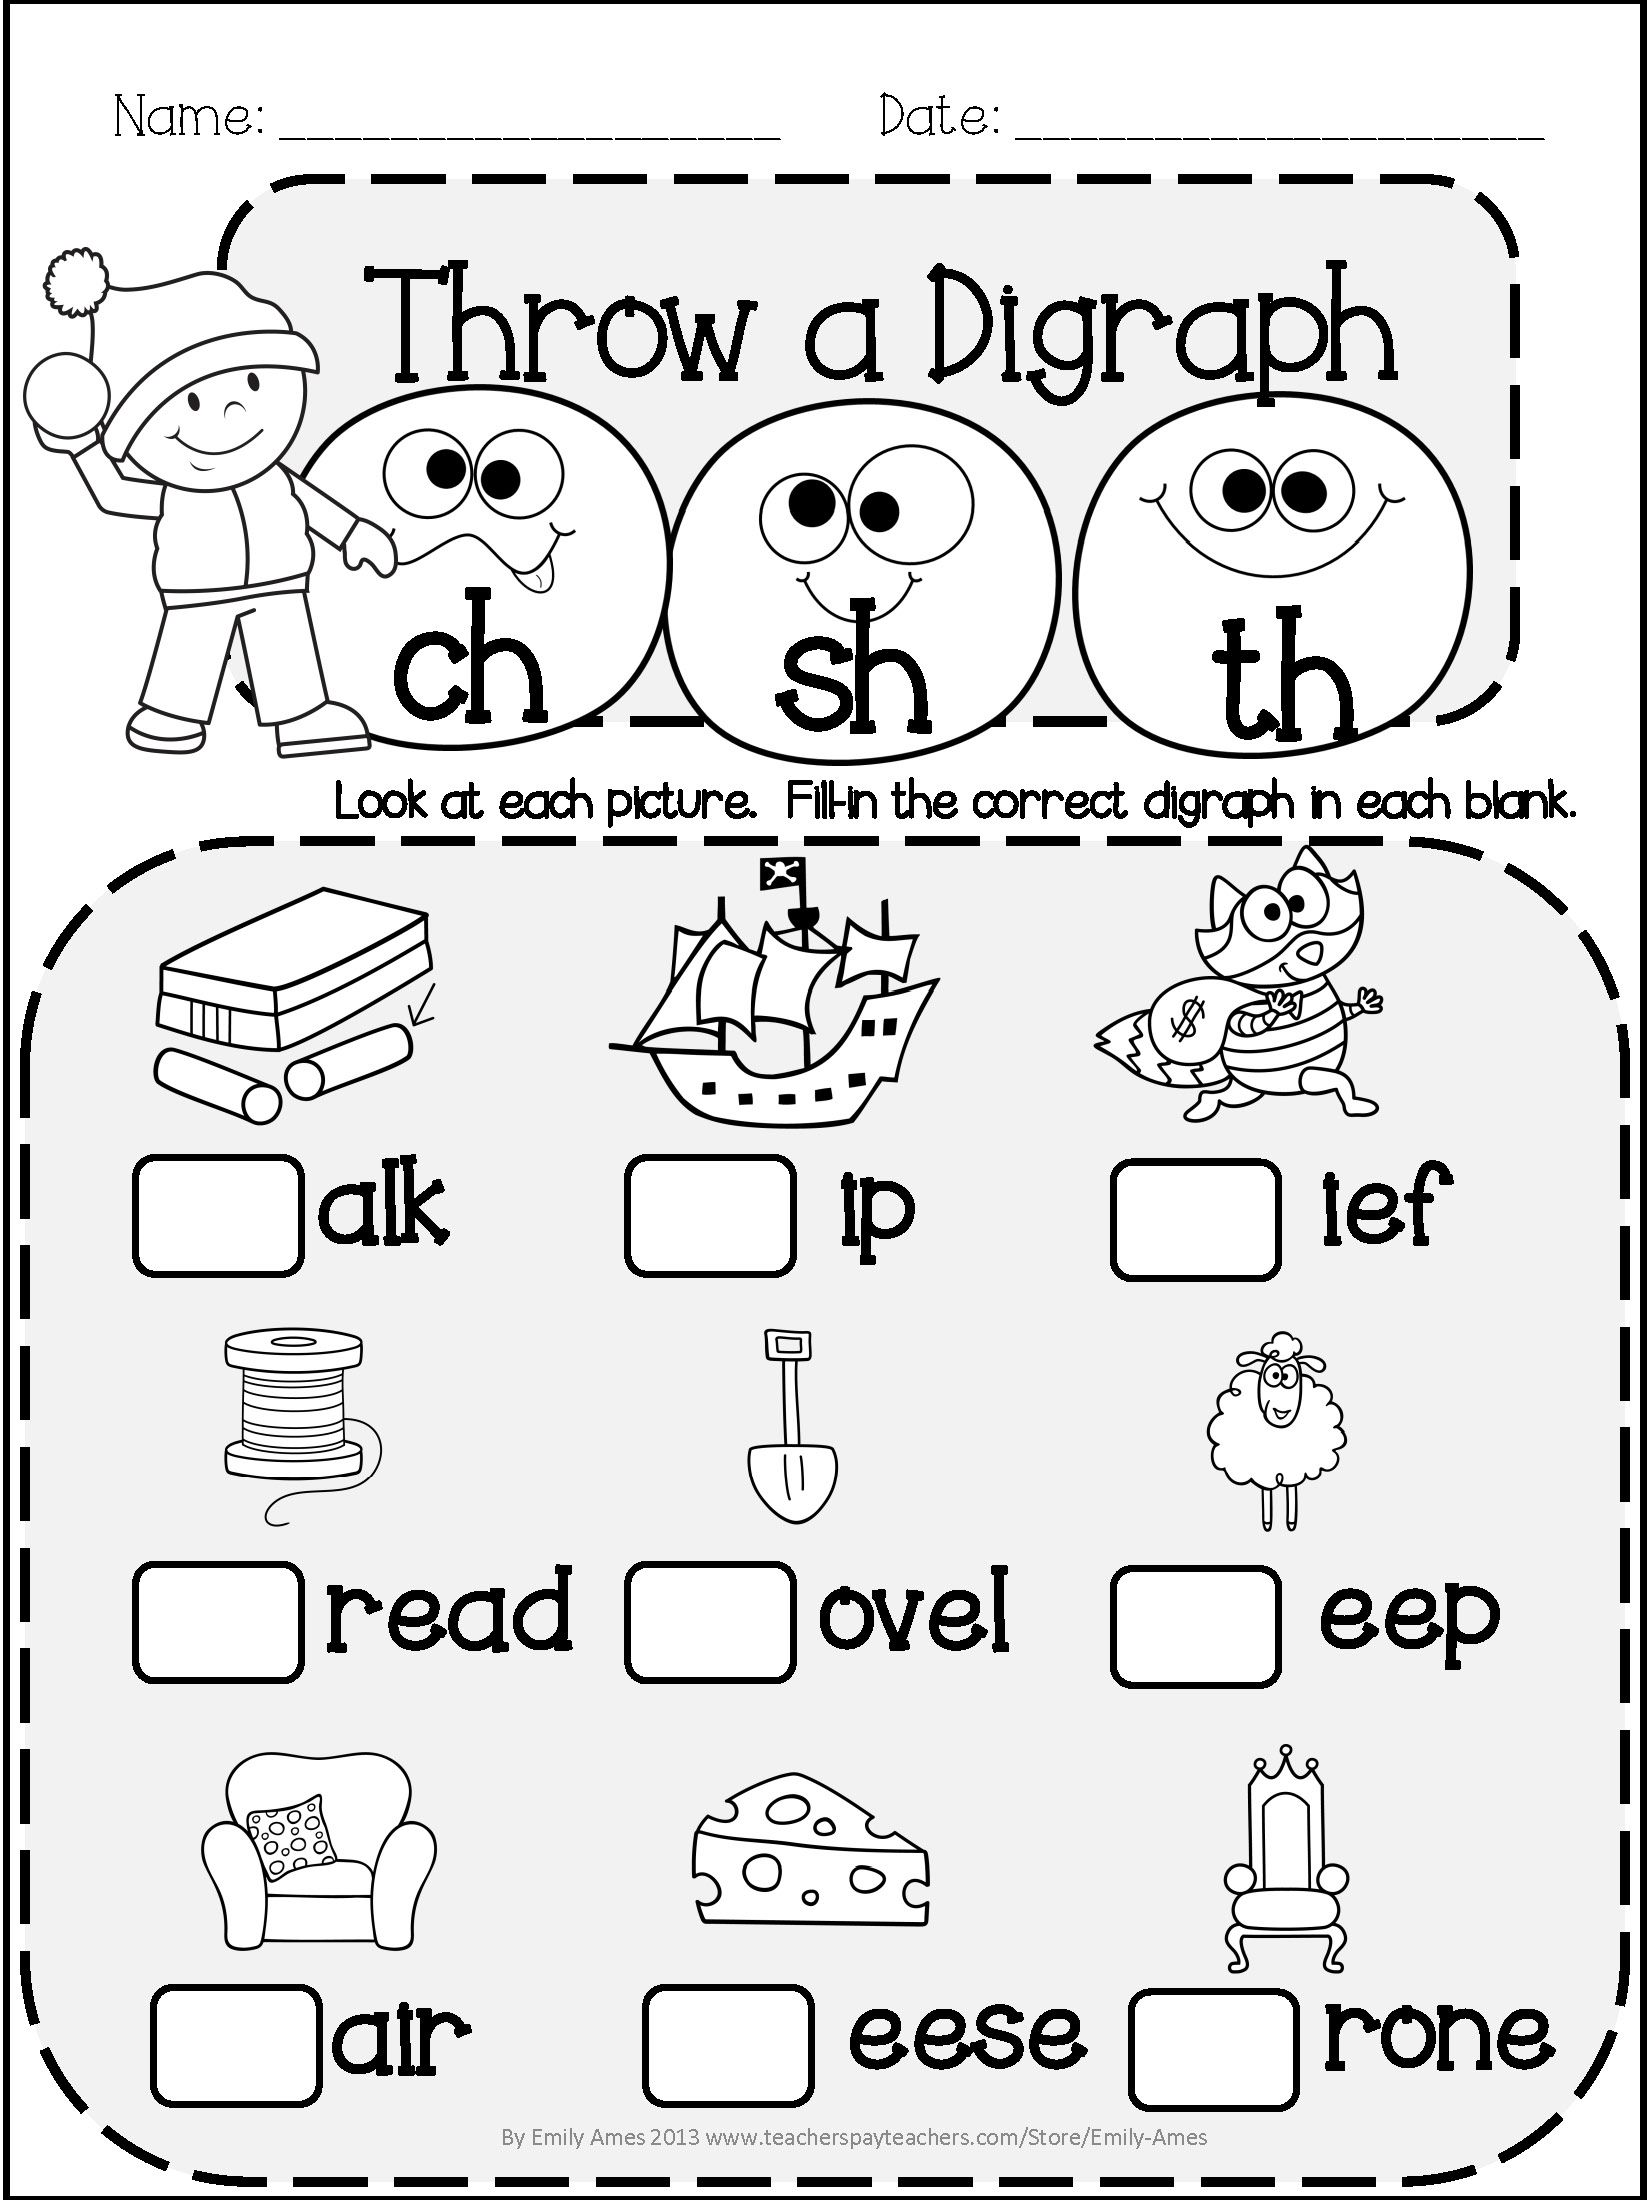 Worksheets Vowels And Consonants Worksheets winter literacy fun short long vowels digraphs and blends differentiated vowel worksheetsconsonant